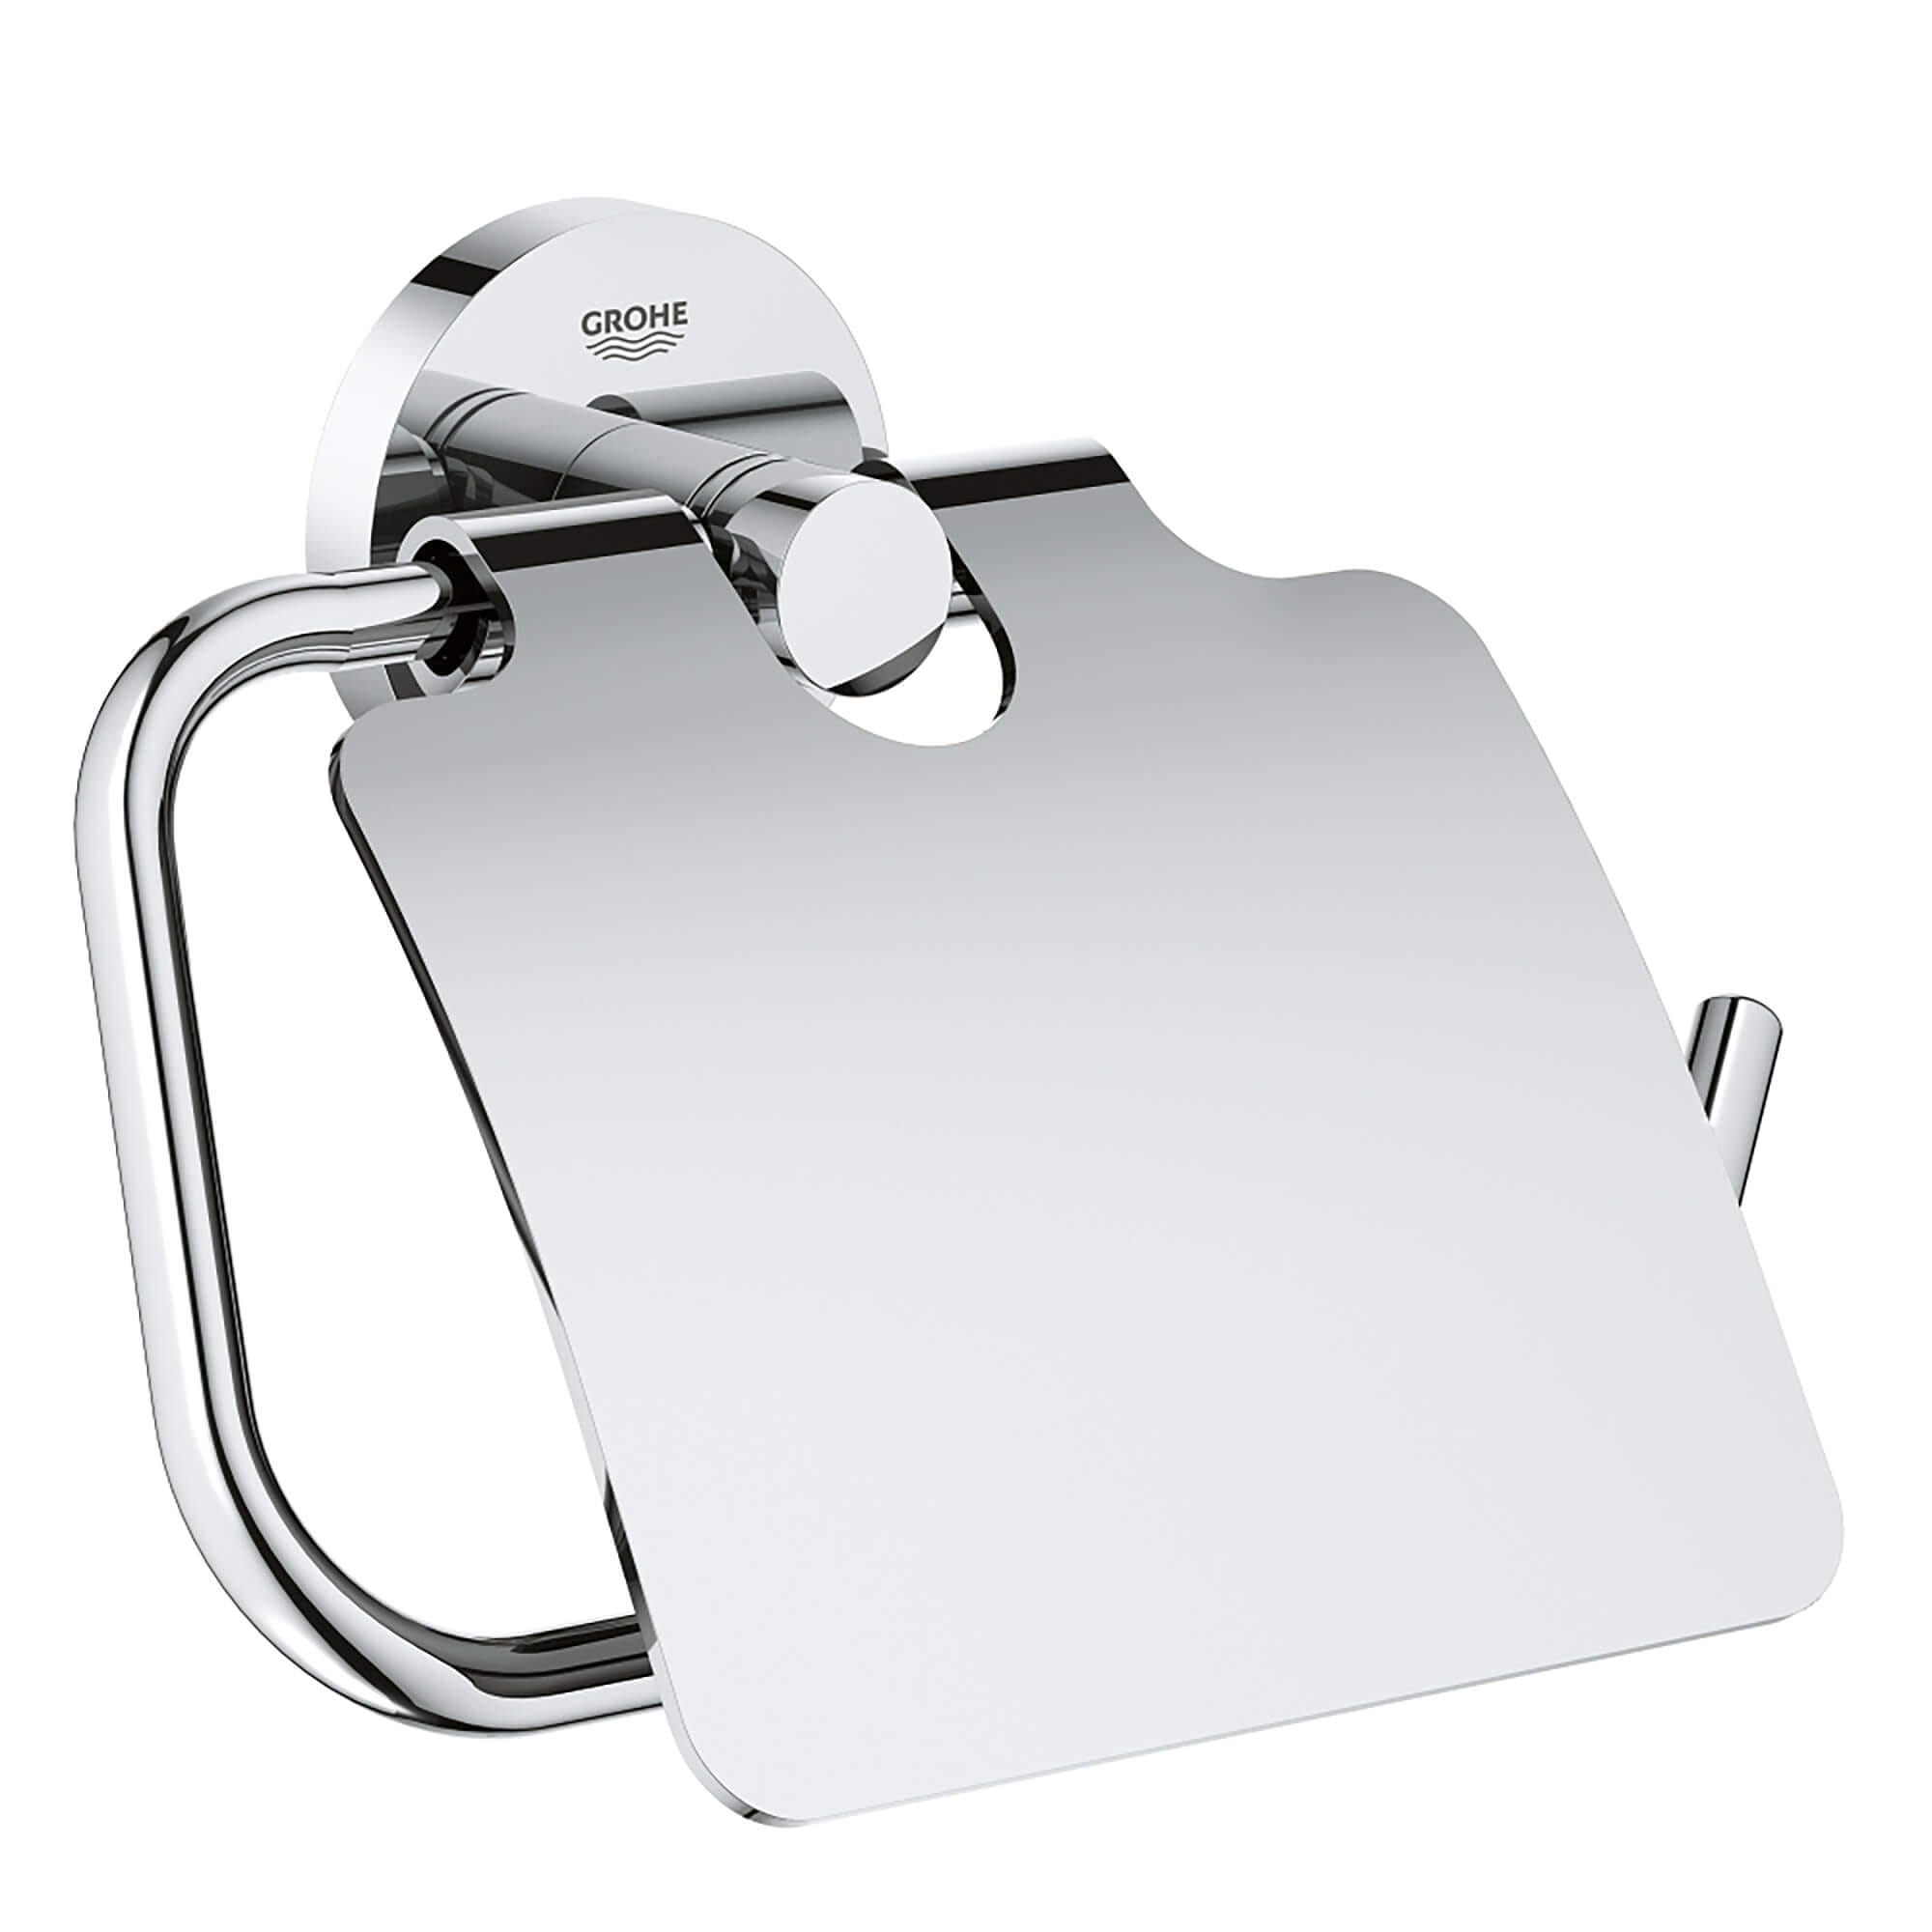 Toilet Paper Holder WCover GROHE CHROME